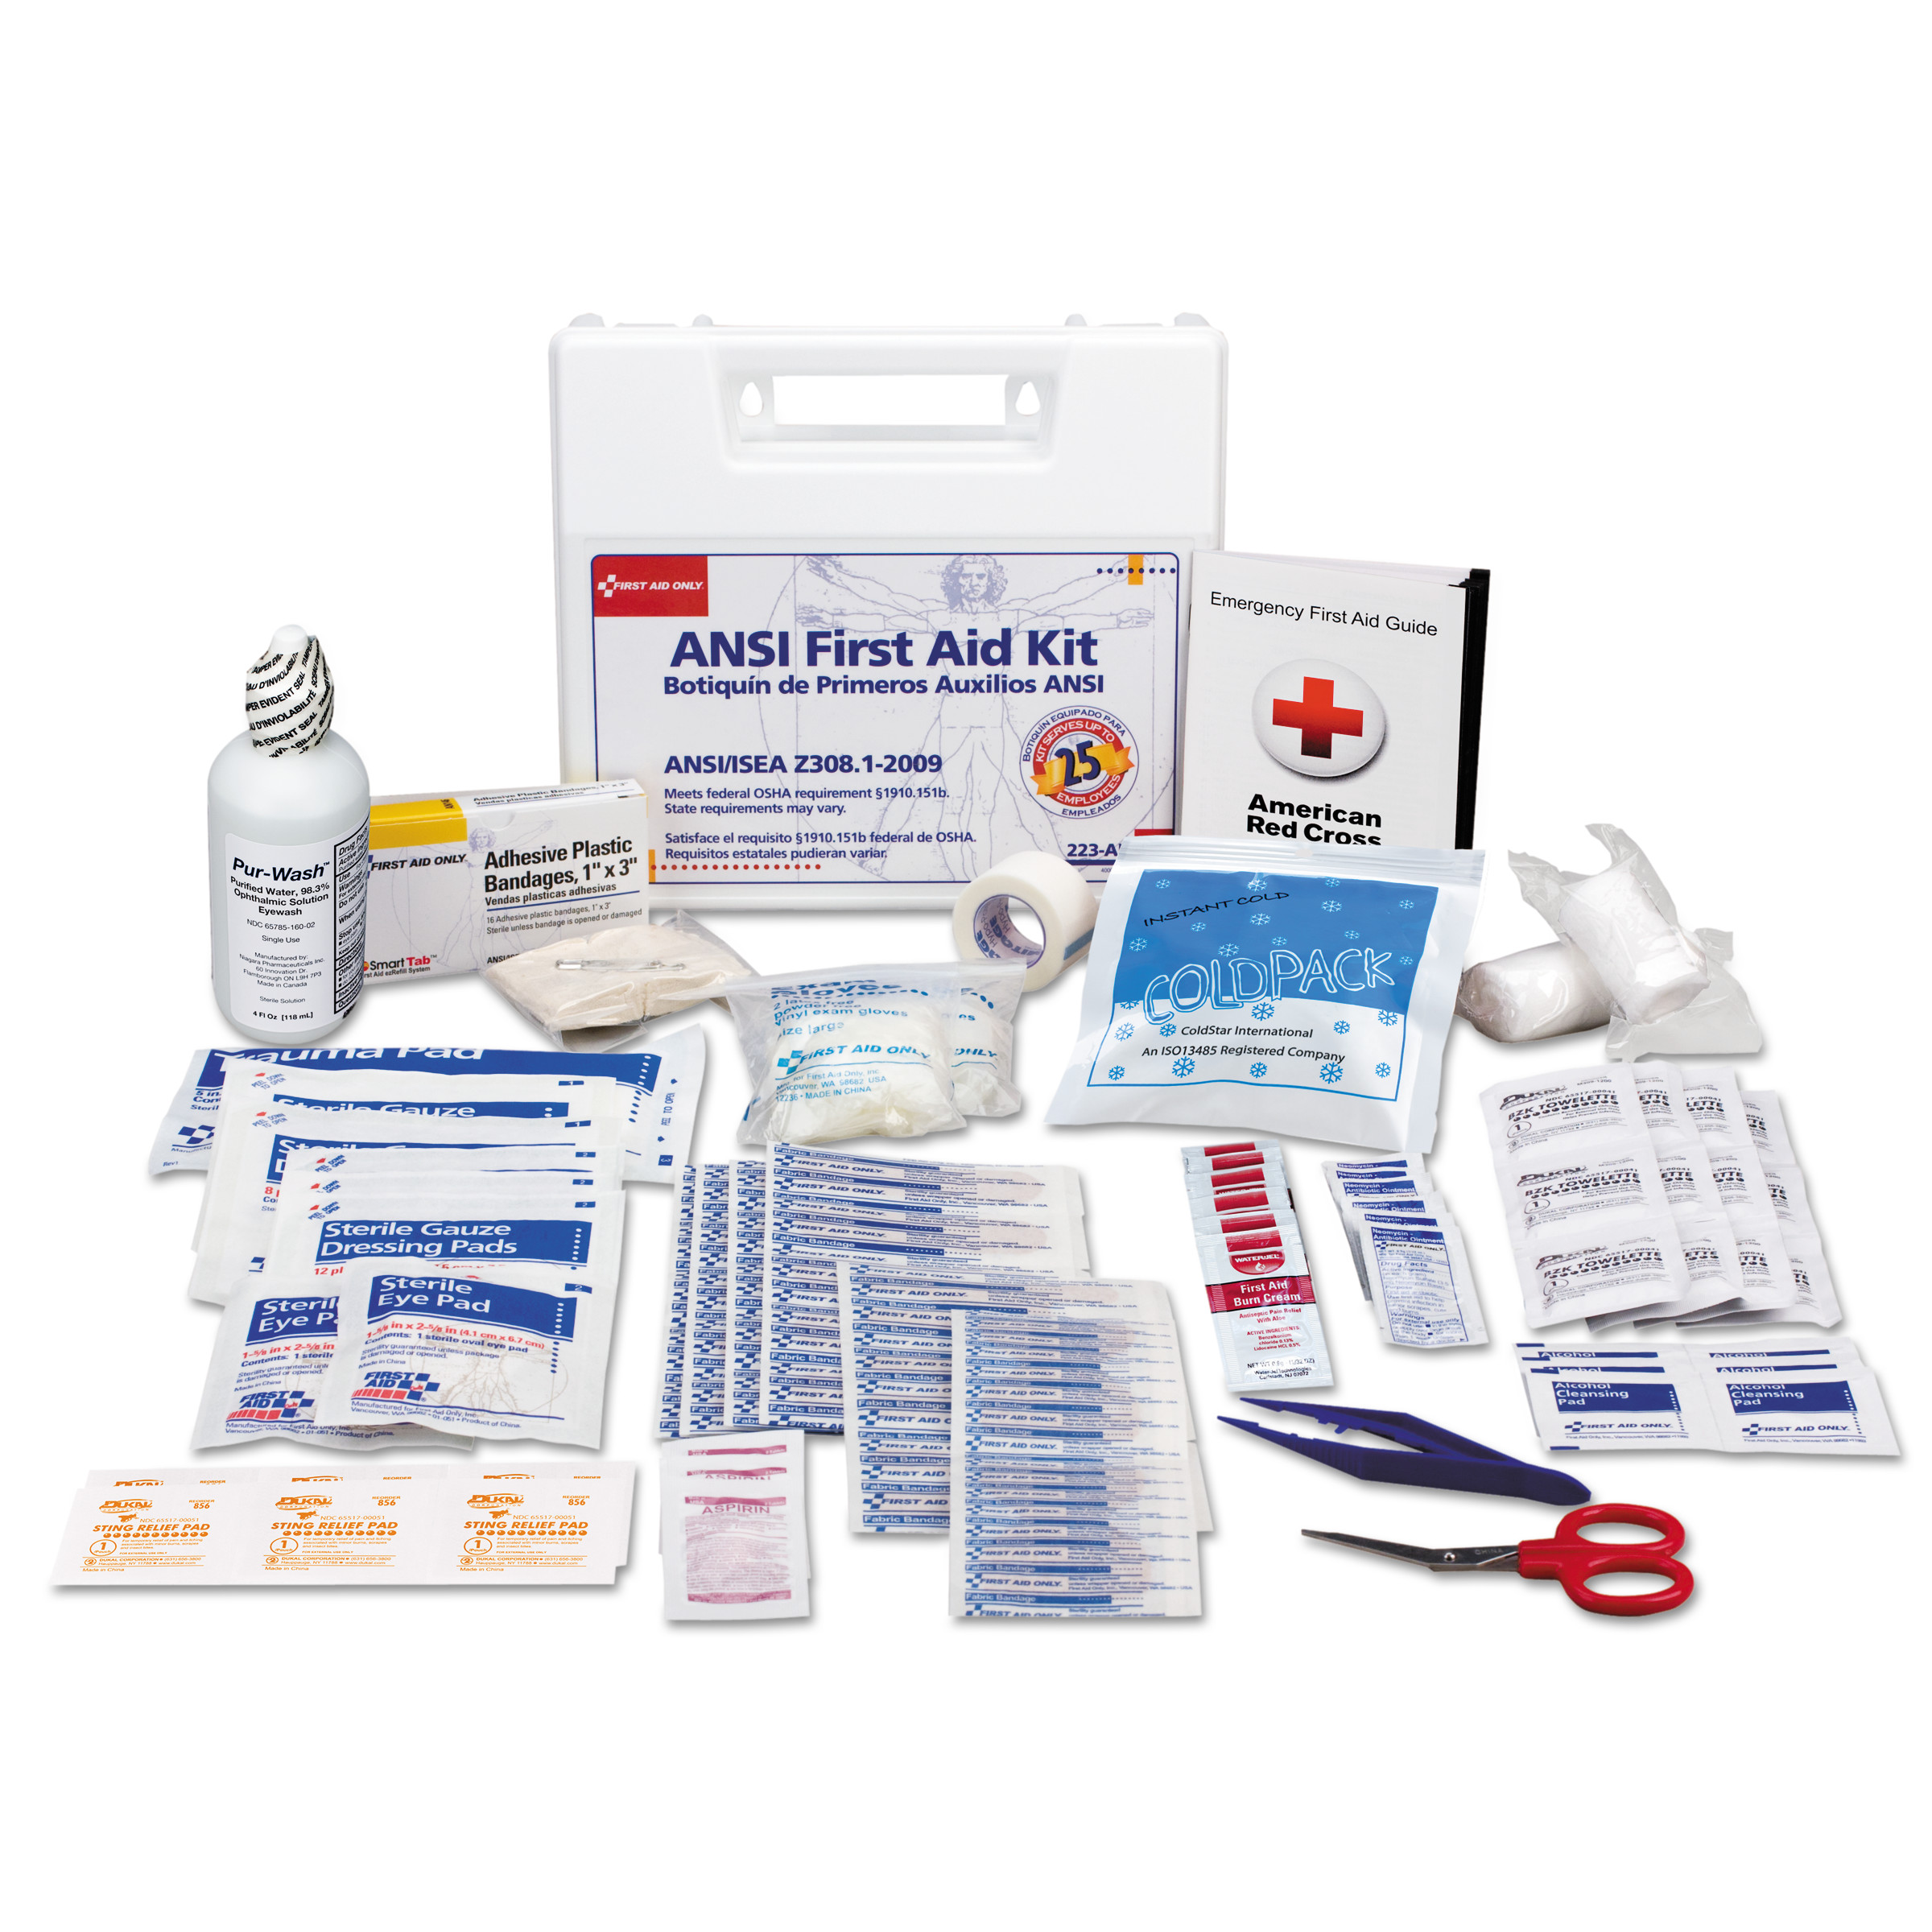 106 Piece Refill For Bulk 25 Person First Aid Kits: 223-U- 223-G & 224-U- 1 Ea. by FIRST AID ONLY, INC.